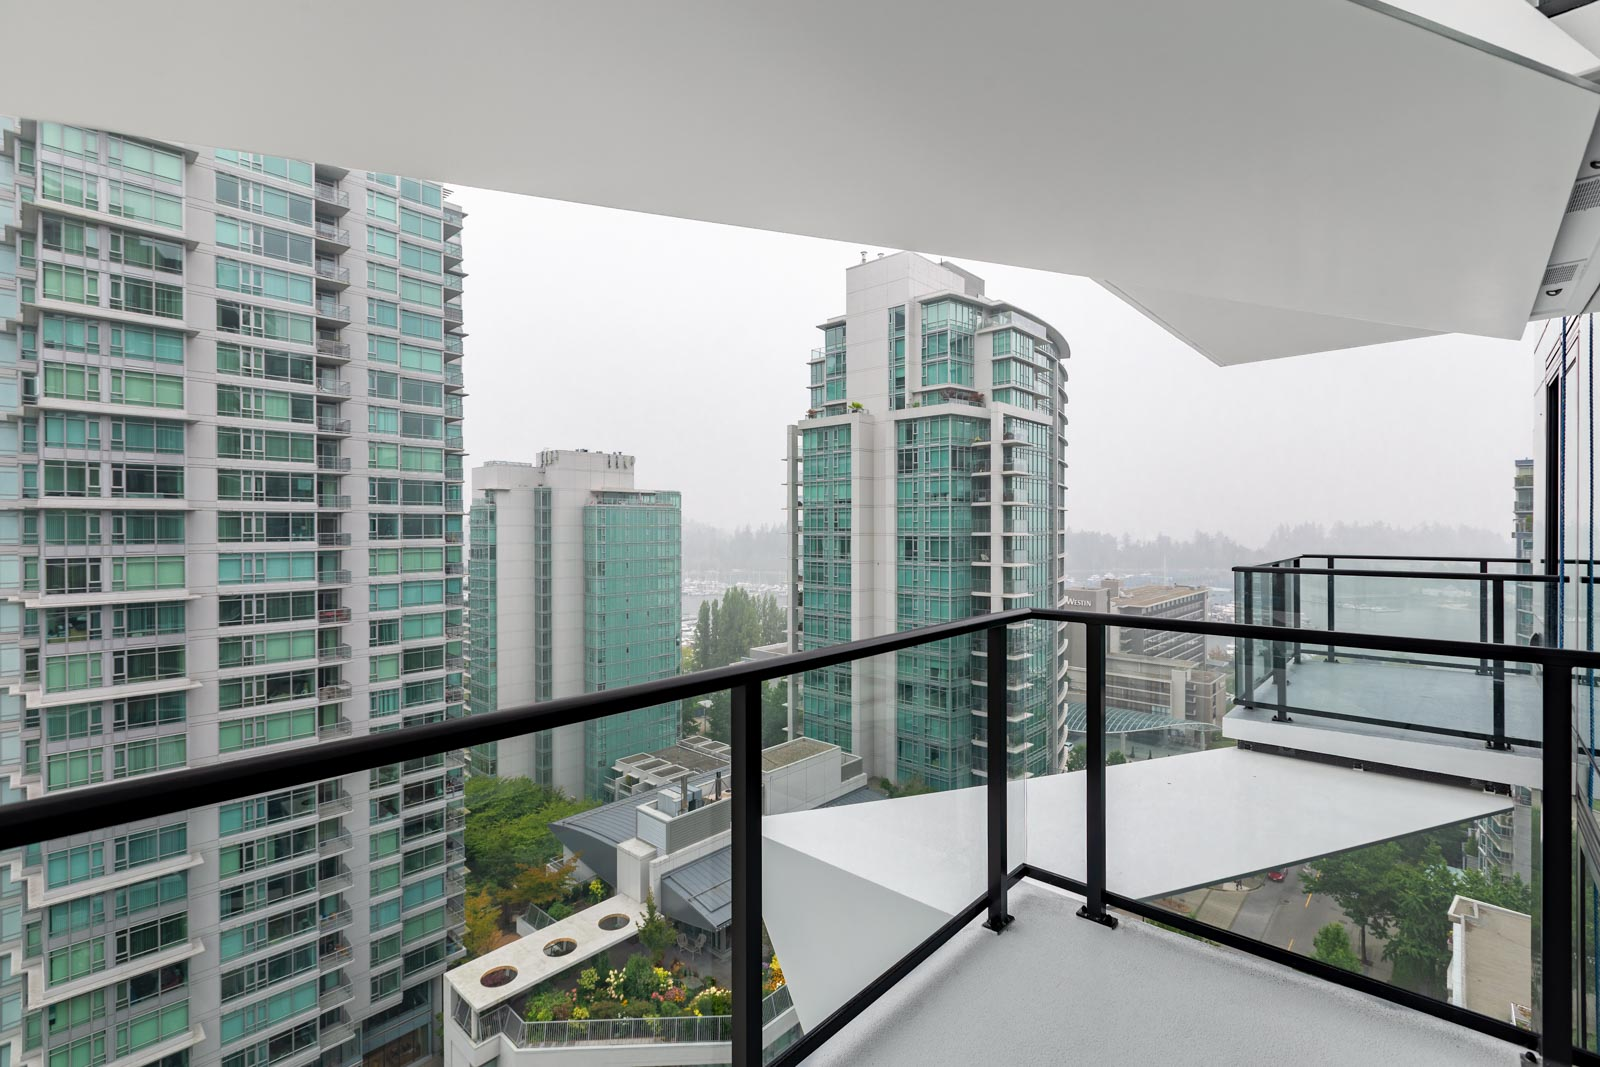 balcony with view of condo buildings of cardero building designed by henriquez partners in coal harbour neighbourhood in downtown vancouver